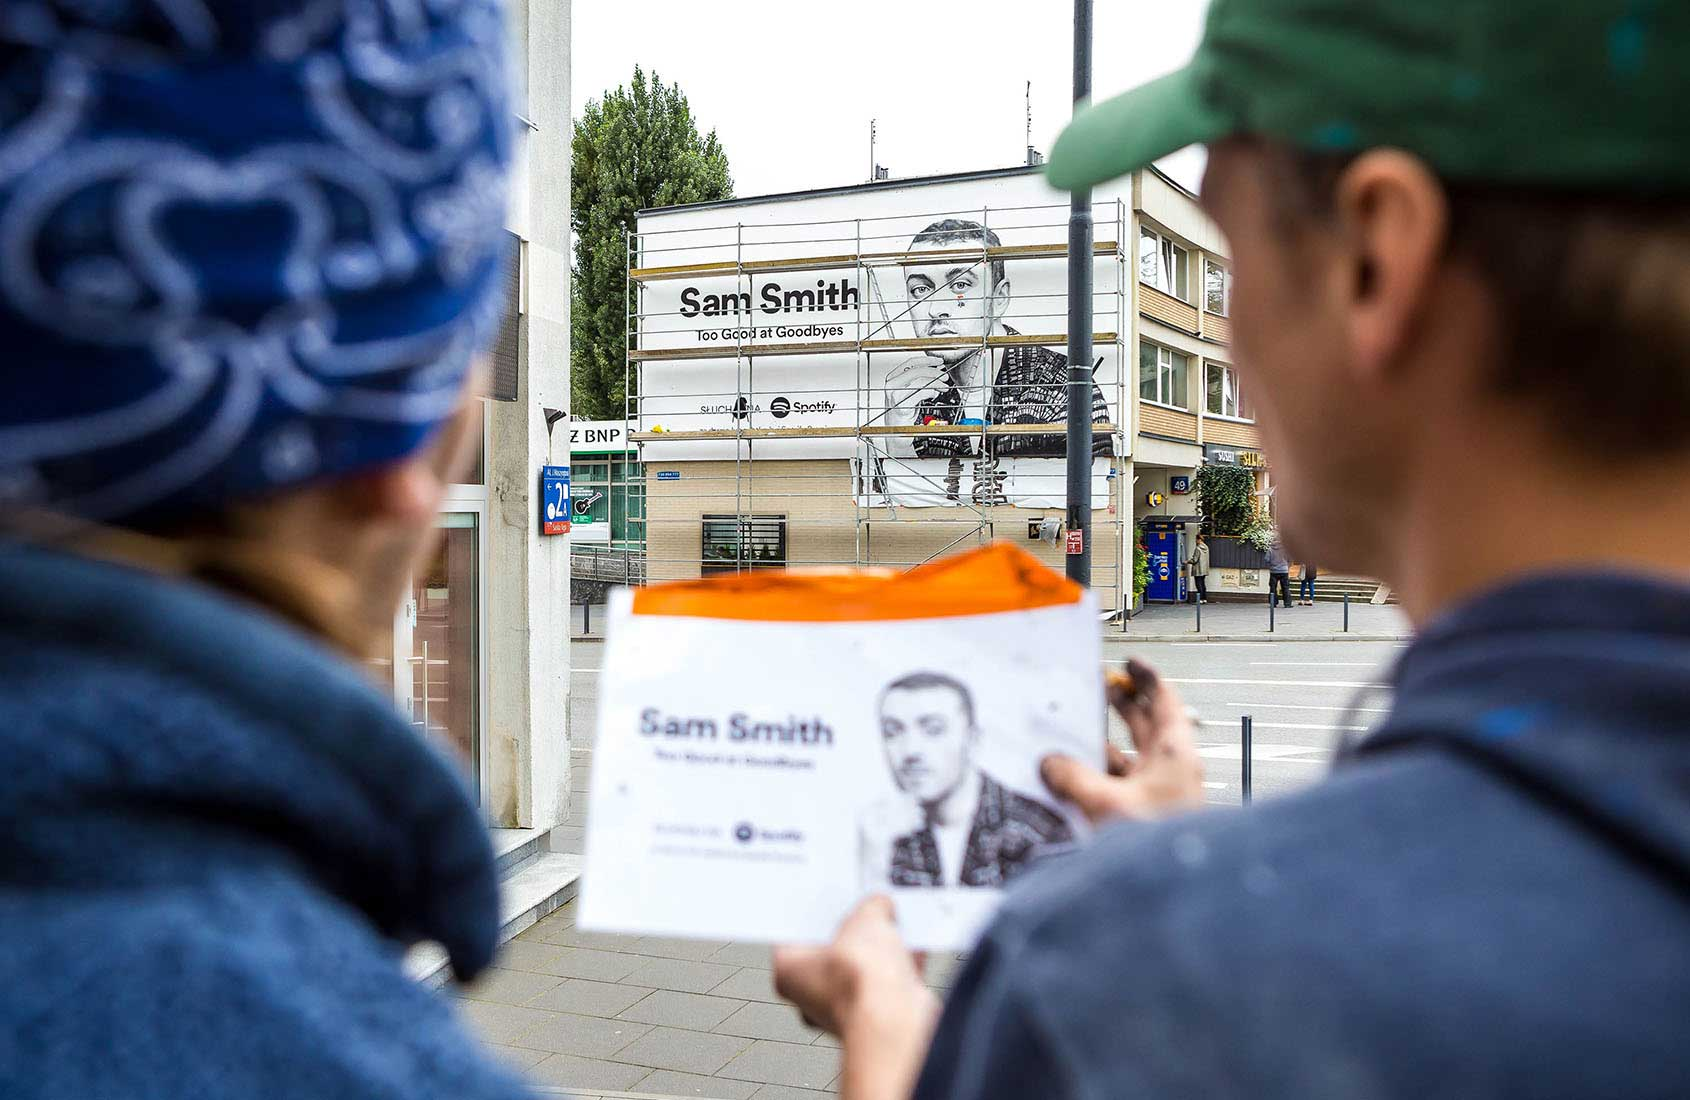 SAM SMITH 02 Spotify IDEAMO Francuska PGE Narodowy Mural